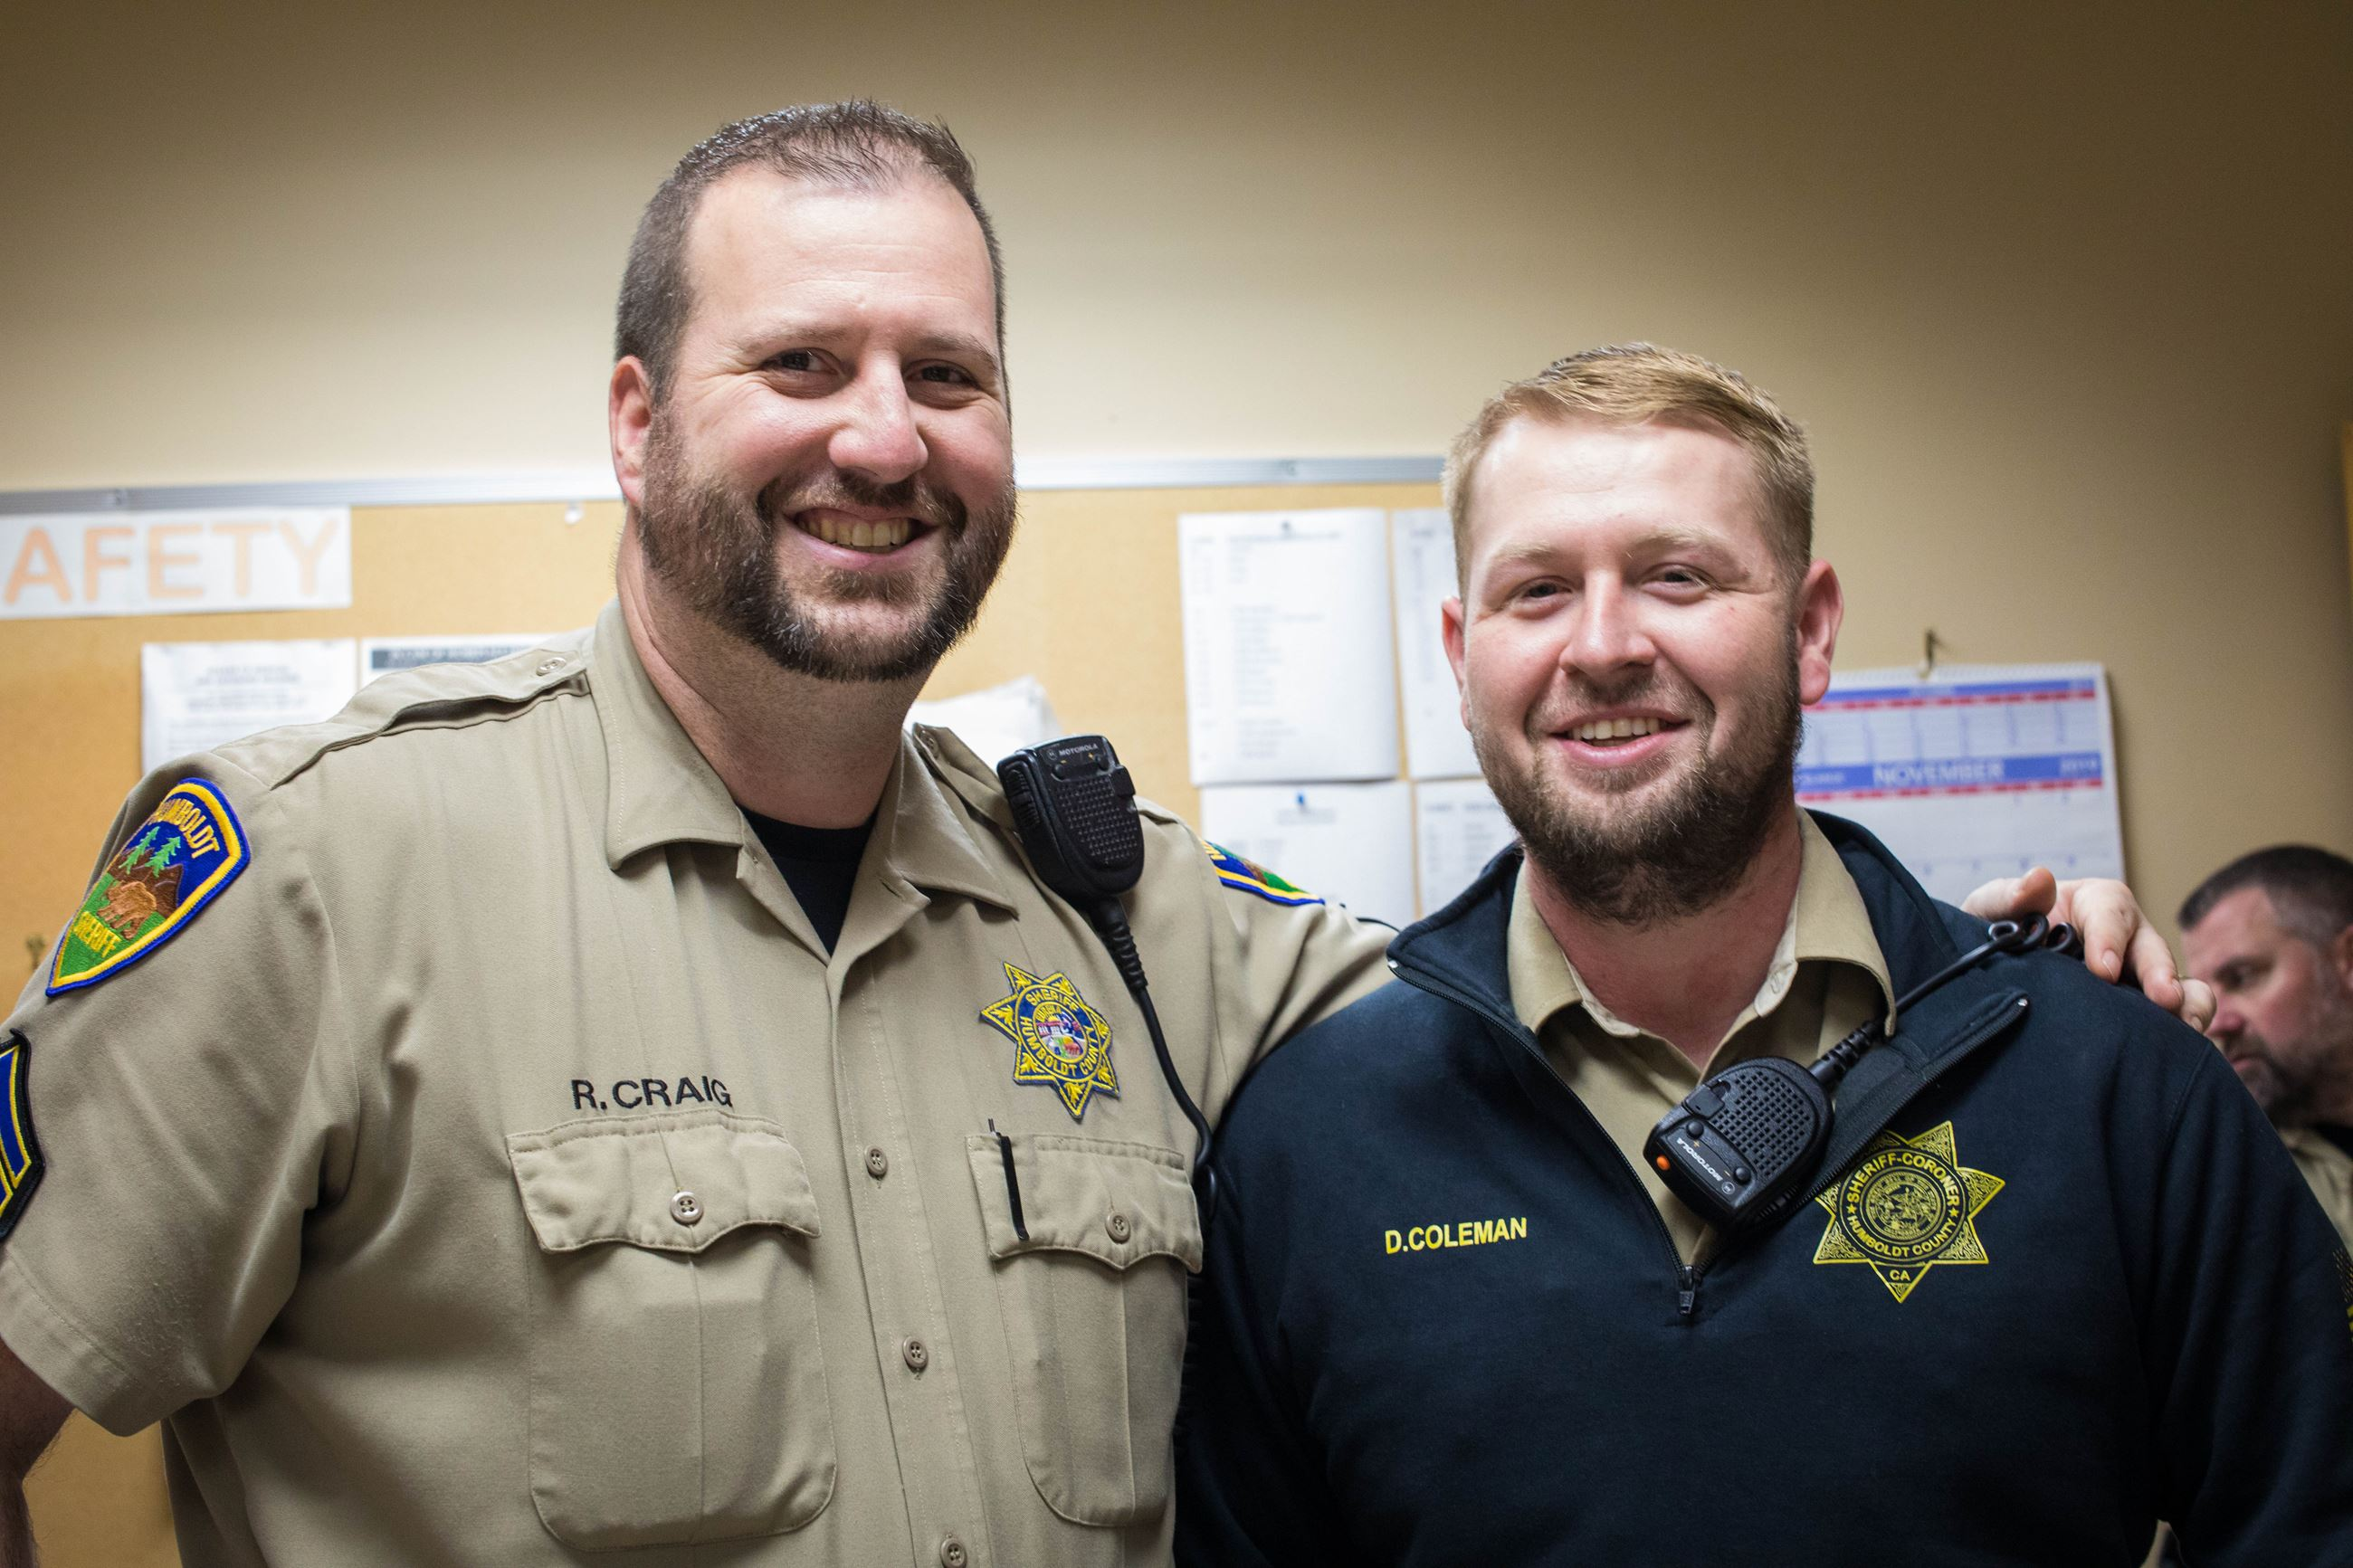 Two correctional deputies smile